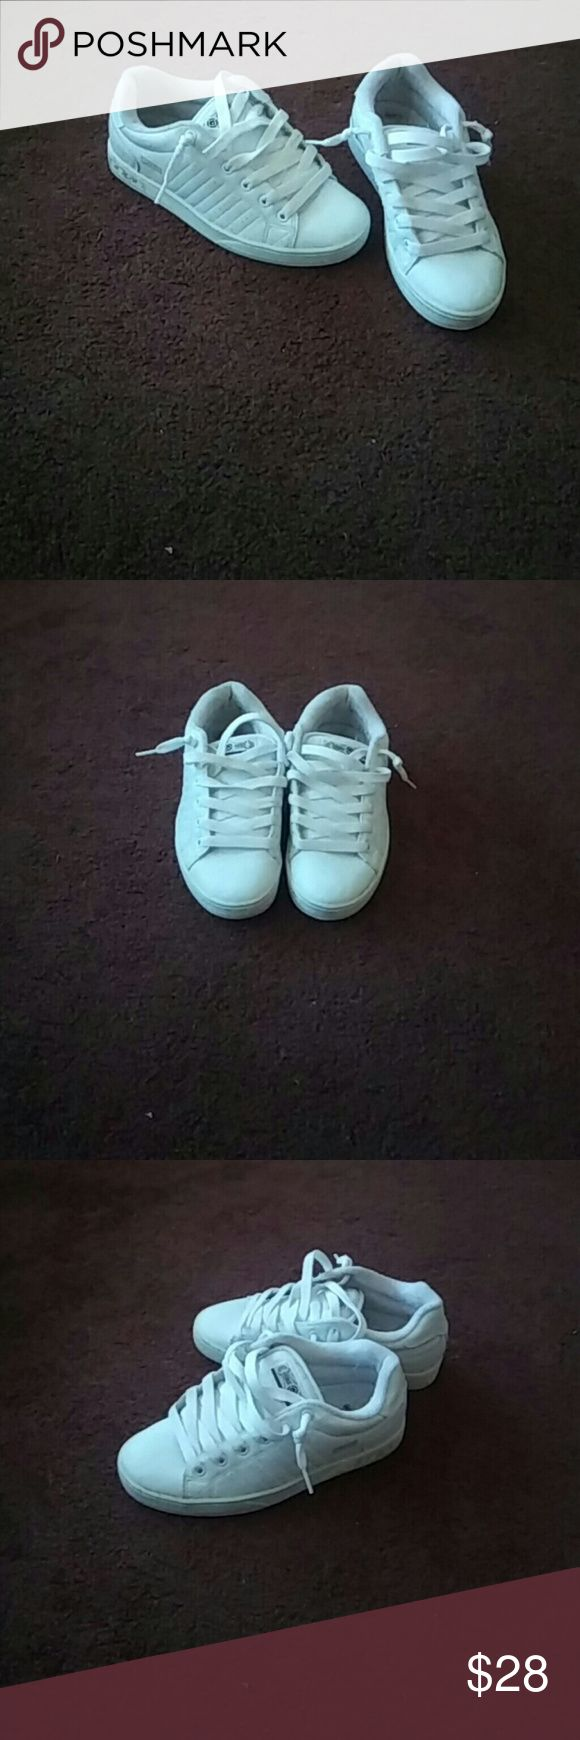 Osiris White Skate Shoes White skate shoes worn a few times will clean before shipped Osiris Shoes Sneakers